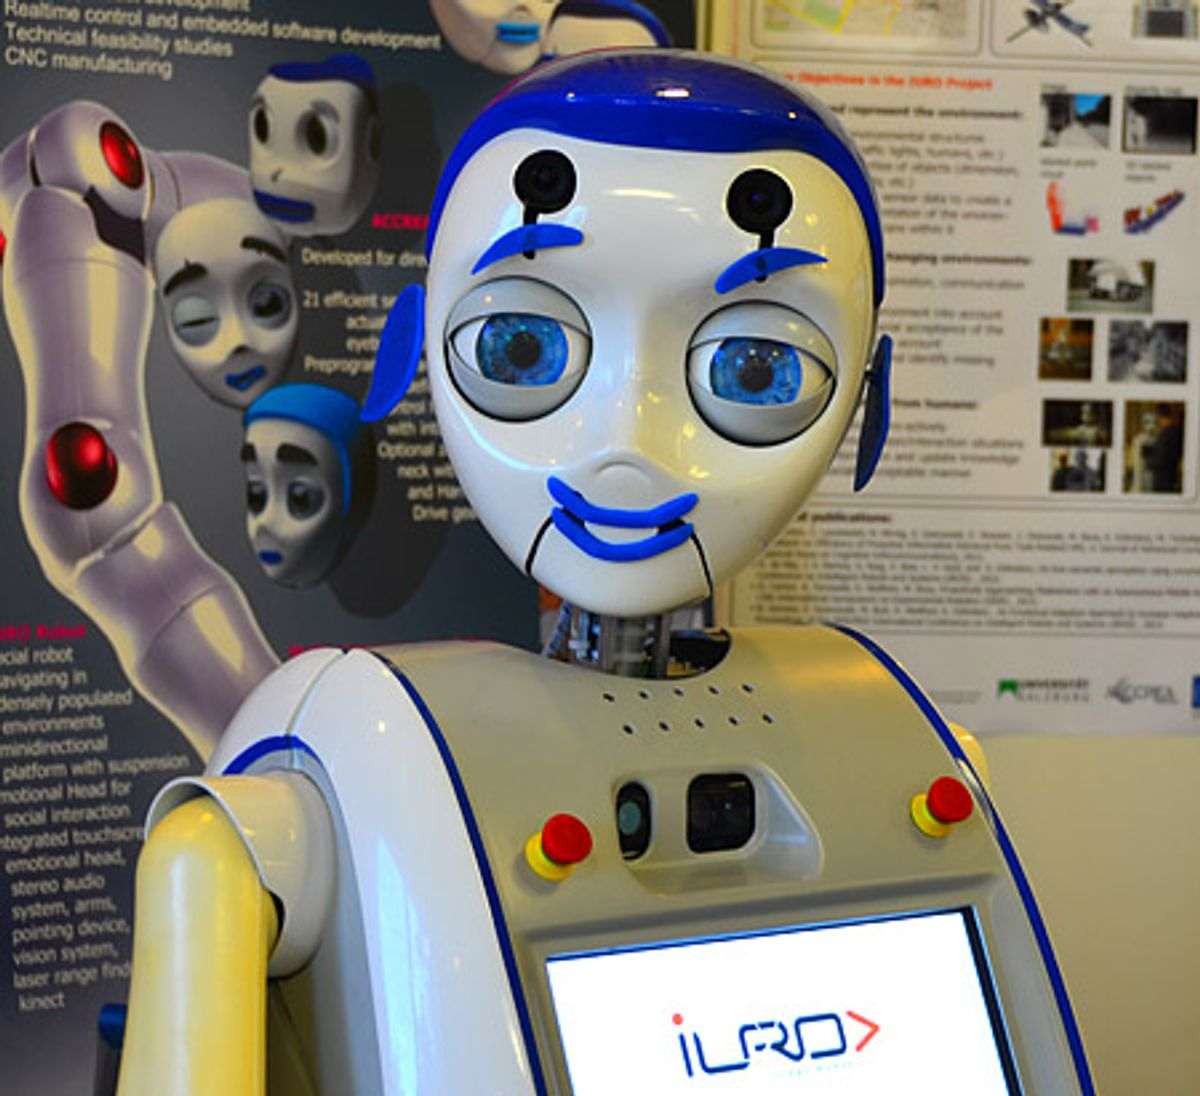 Iuro Robot Finds Its Way Through Cities, With Your Help